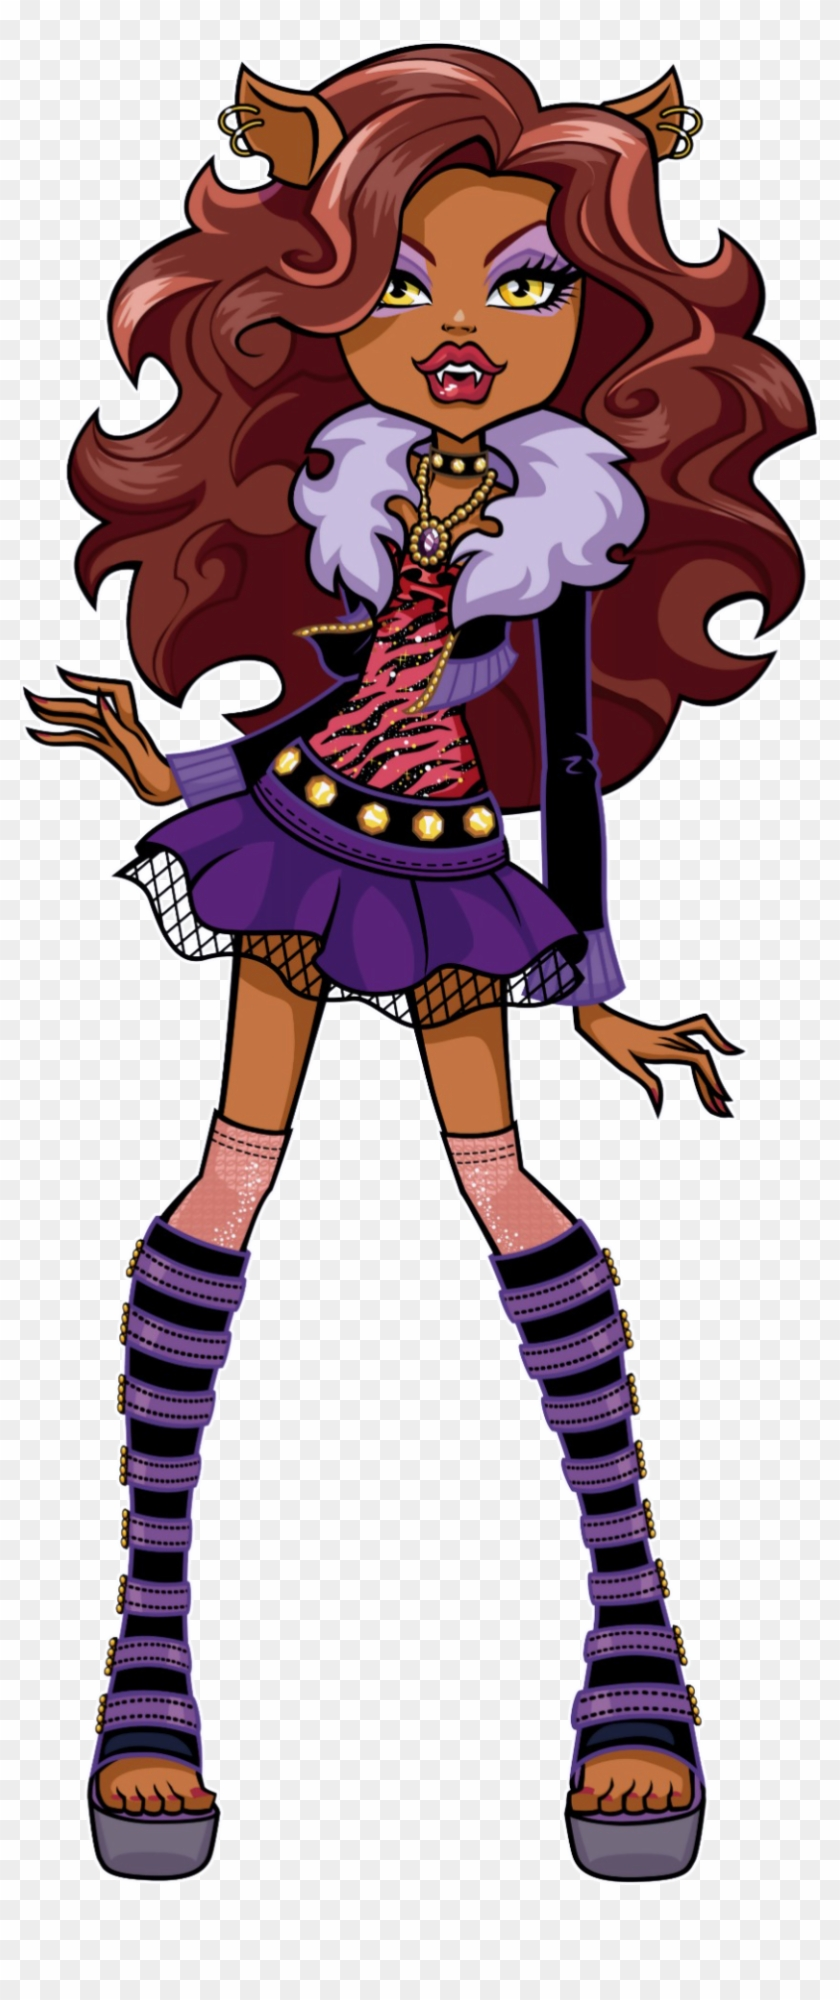 Confident And Fierce She Is Considered The School S Monster High Clawdeen Wolf Free Transparent Png Clipart Images Download